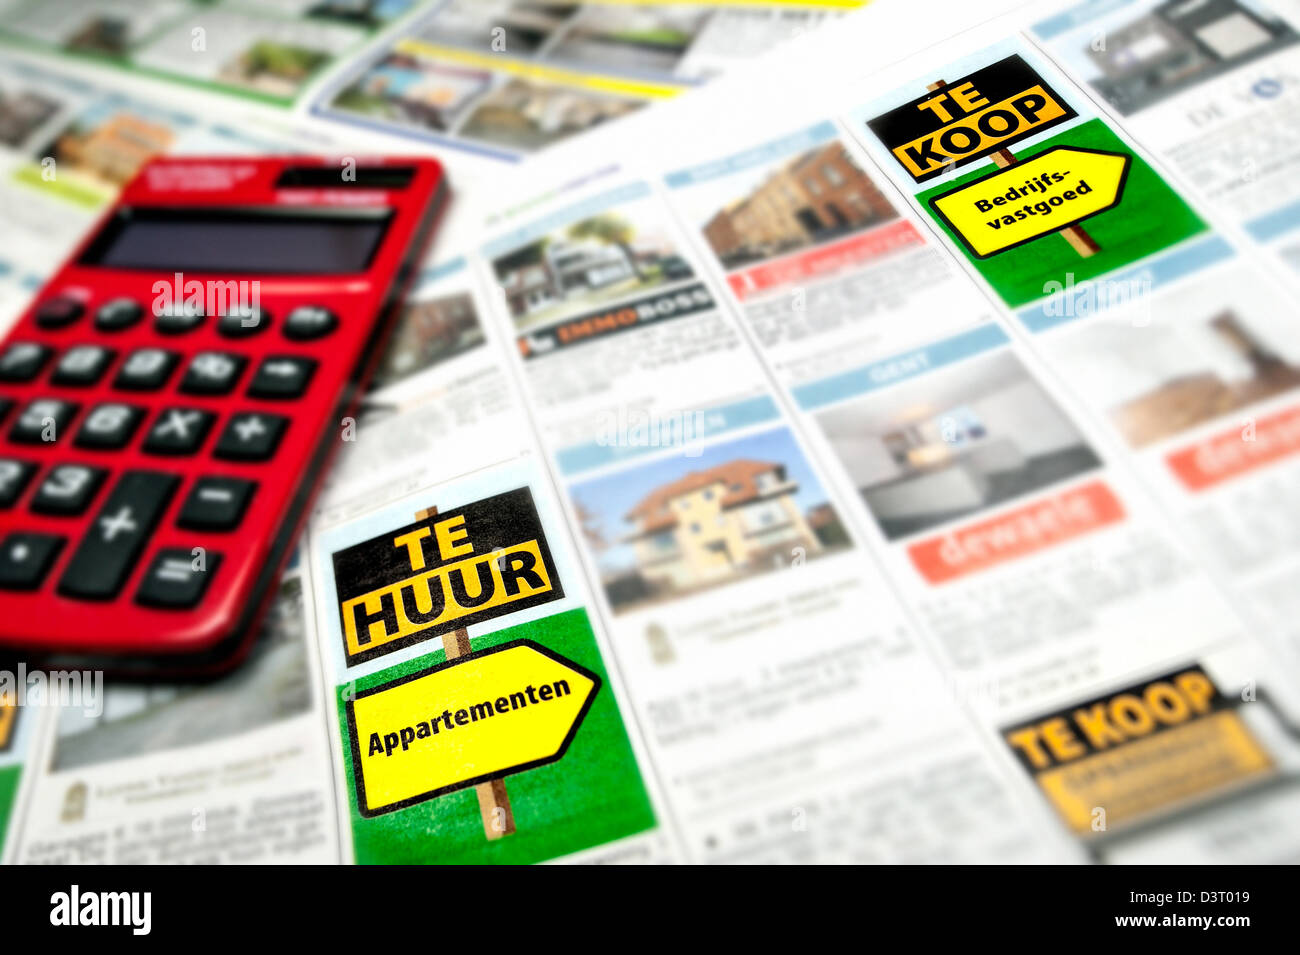 Dutch advertisement columns on advertiser page showing real estate ads in Belgium - Stock Image